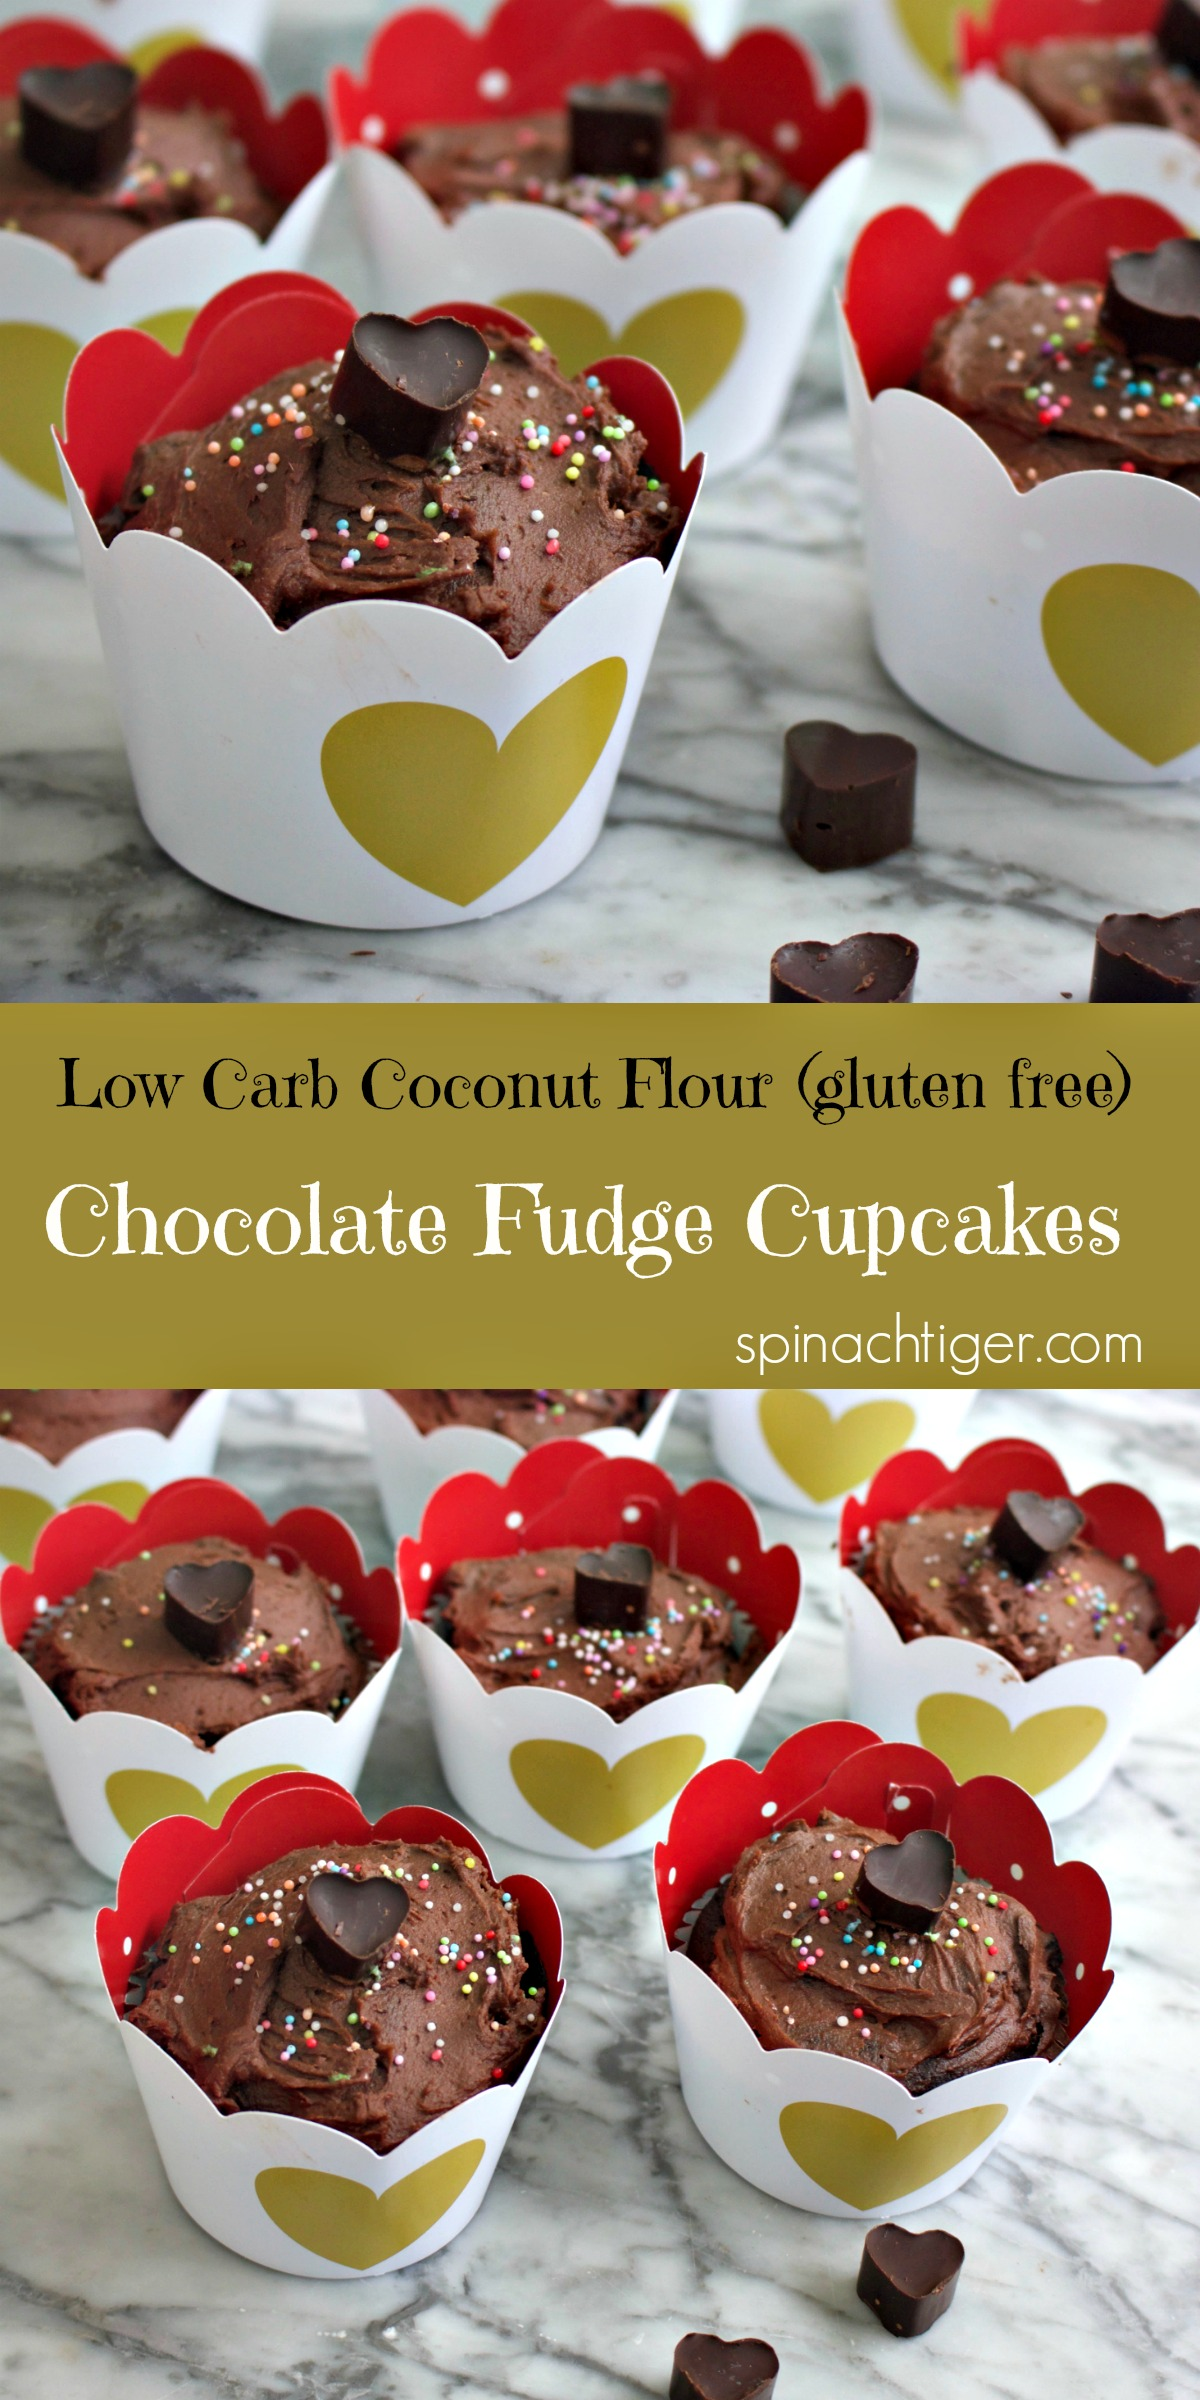 Full of chocolate flavor, this is a best seller in my keto bakery. #ketochocolatecupcakes #lowcarbchocolateCupcakes #Spinachtiger via @angelaroberts